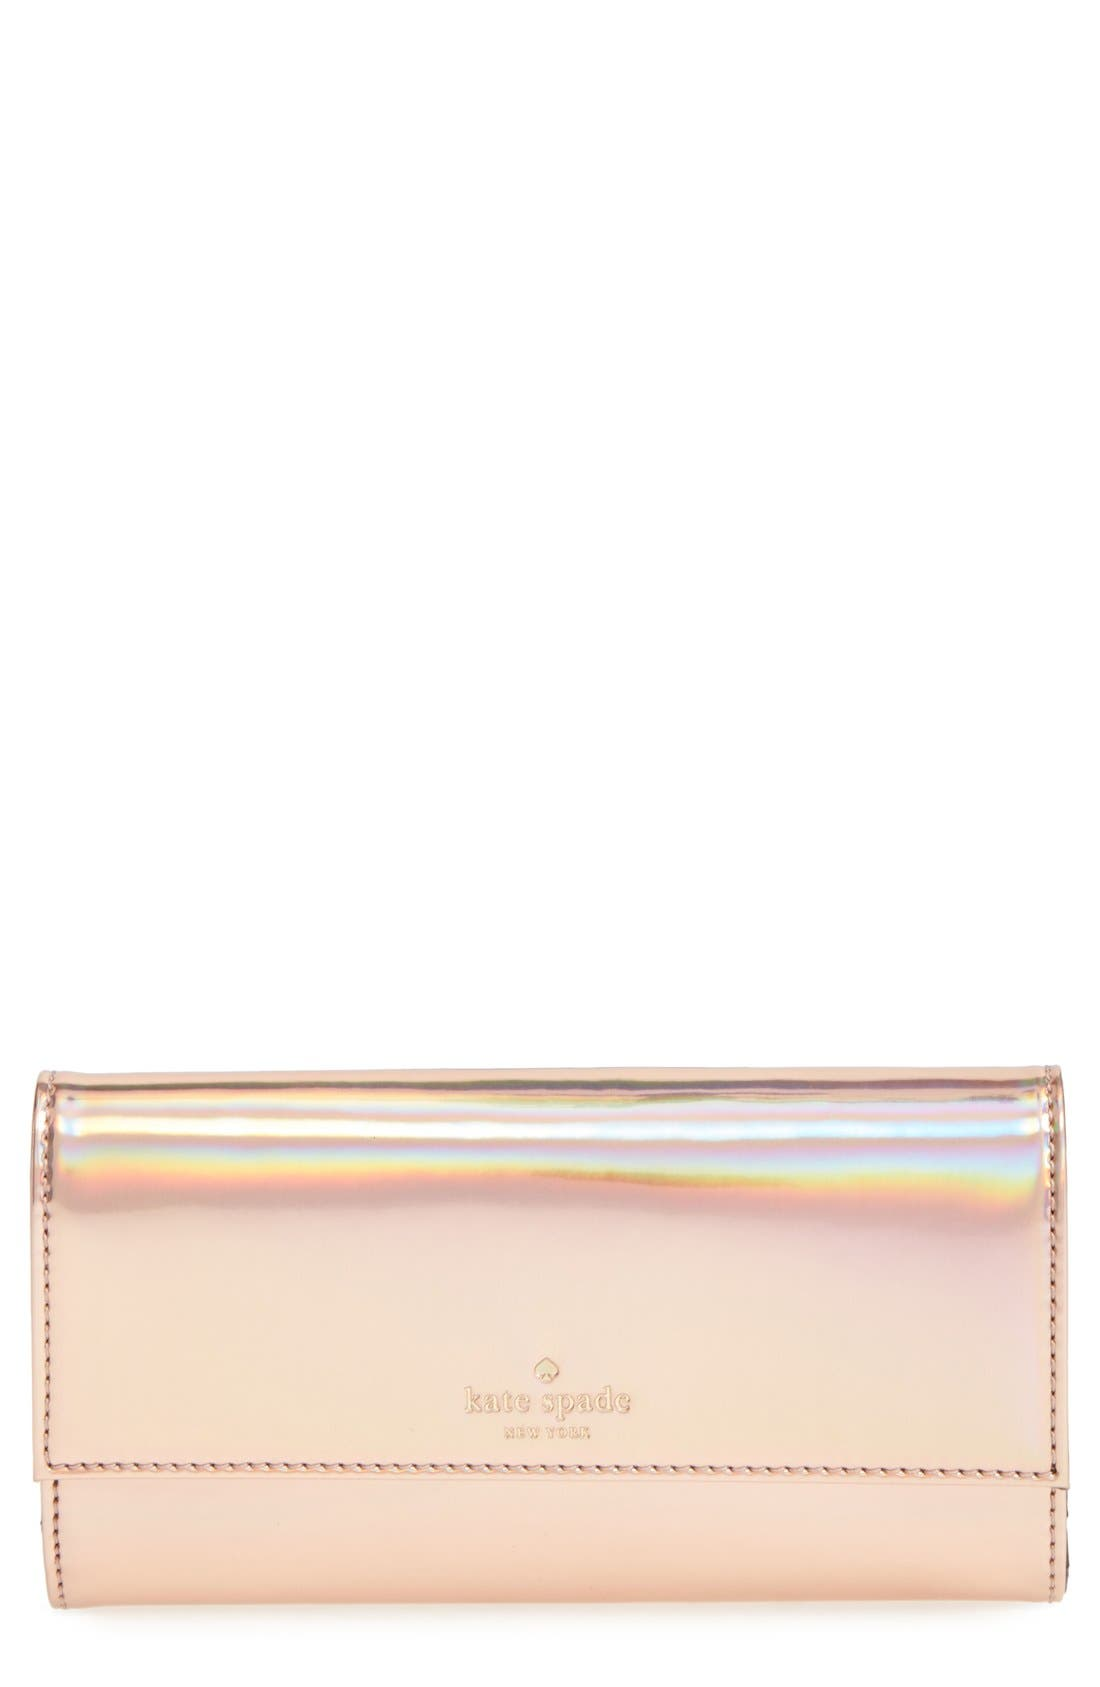 Alternate Image 1 Selected - kate spade new york iPhone 6 & 6s wallet & case